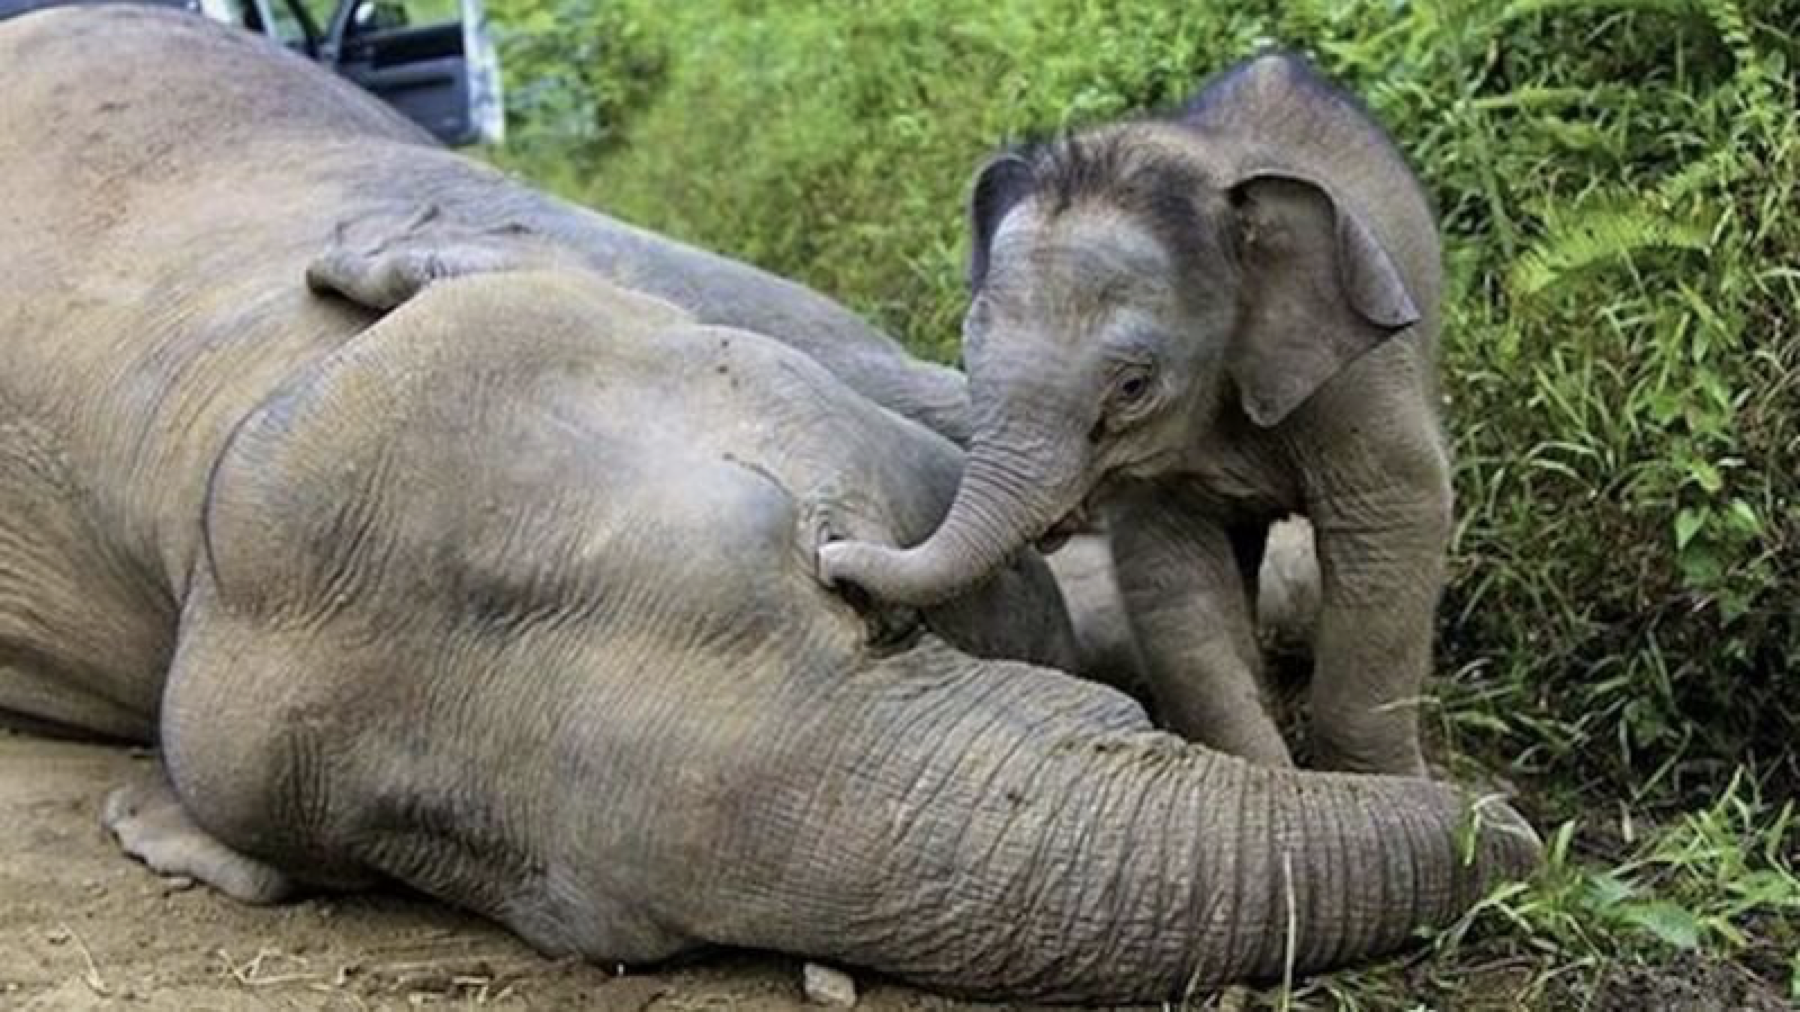 Baby elephant with dead mother elephant